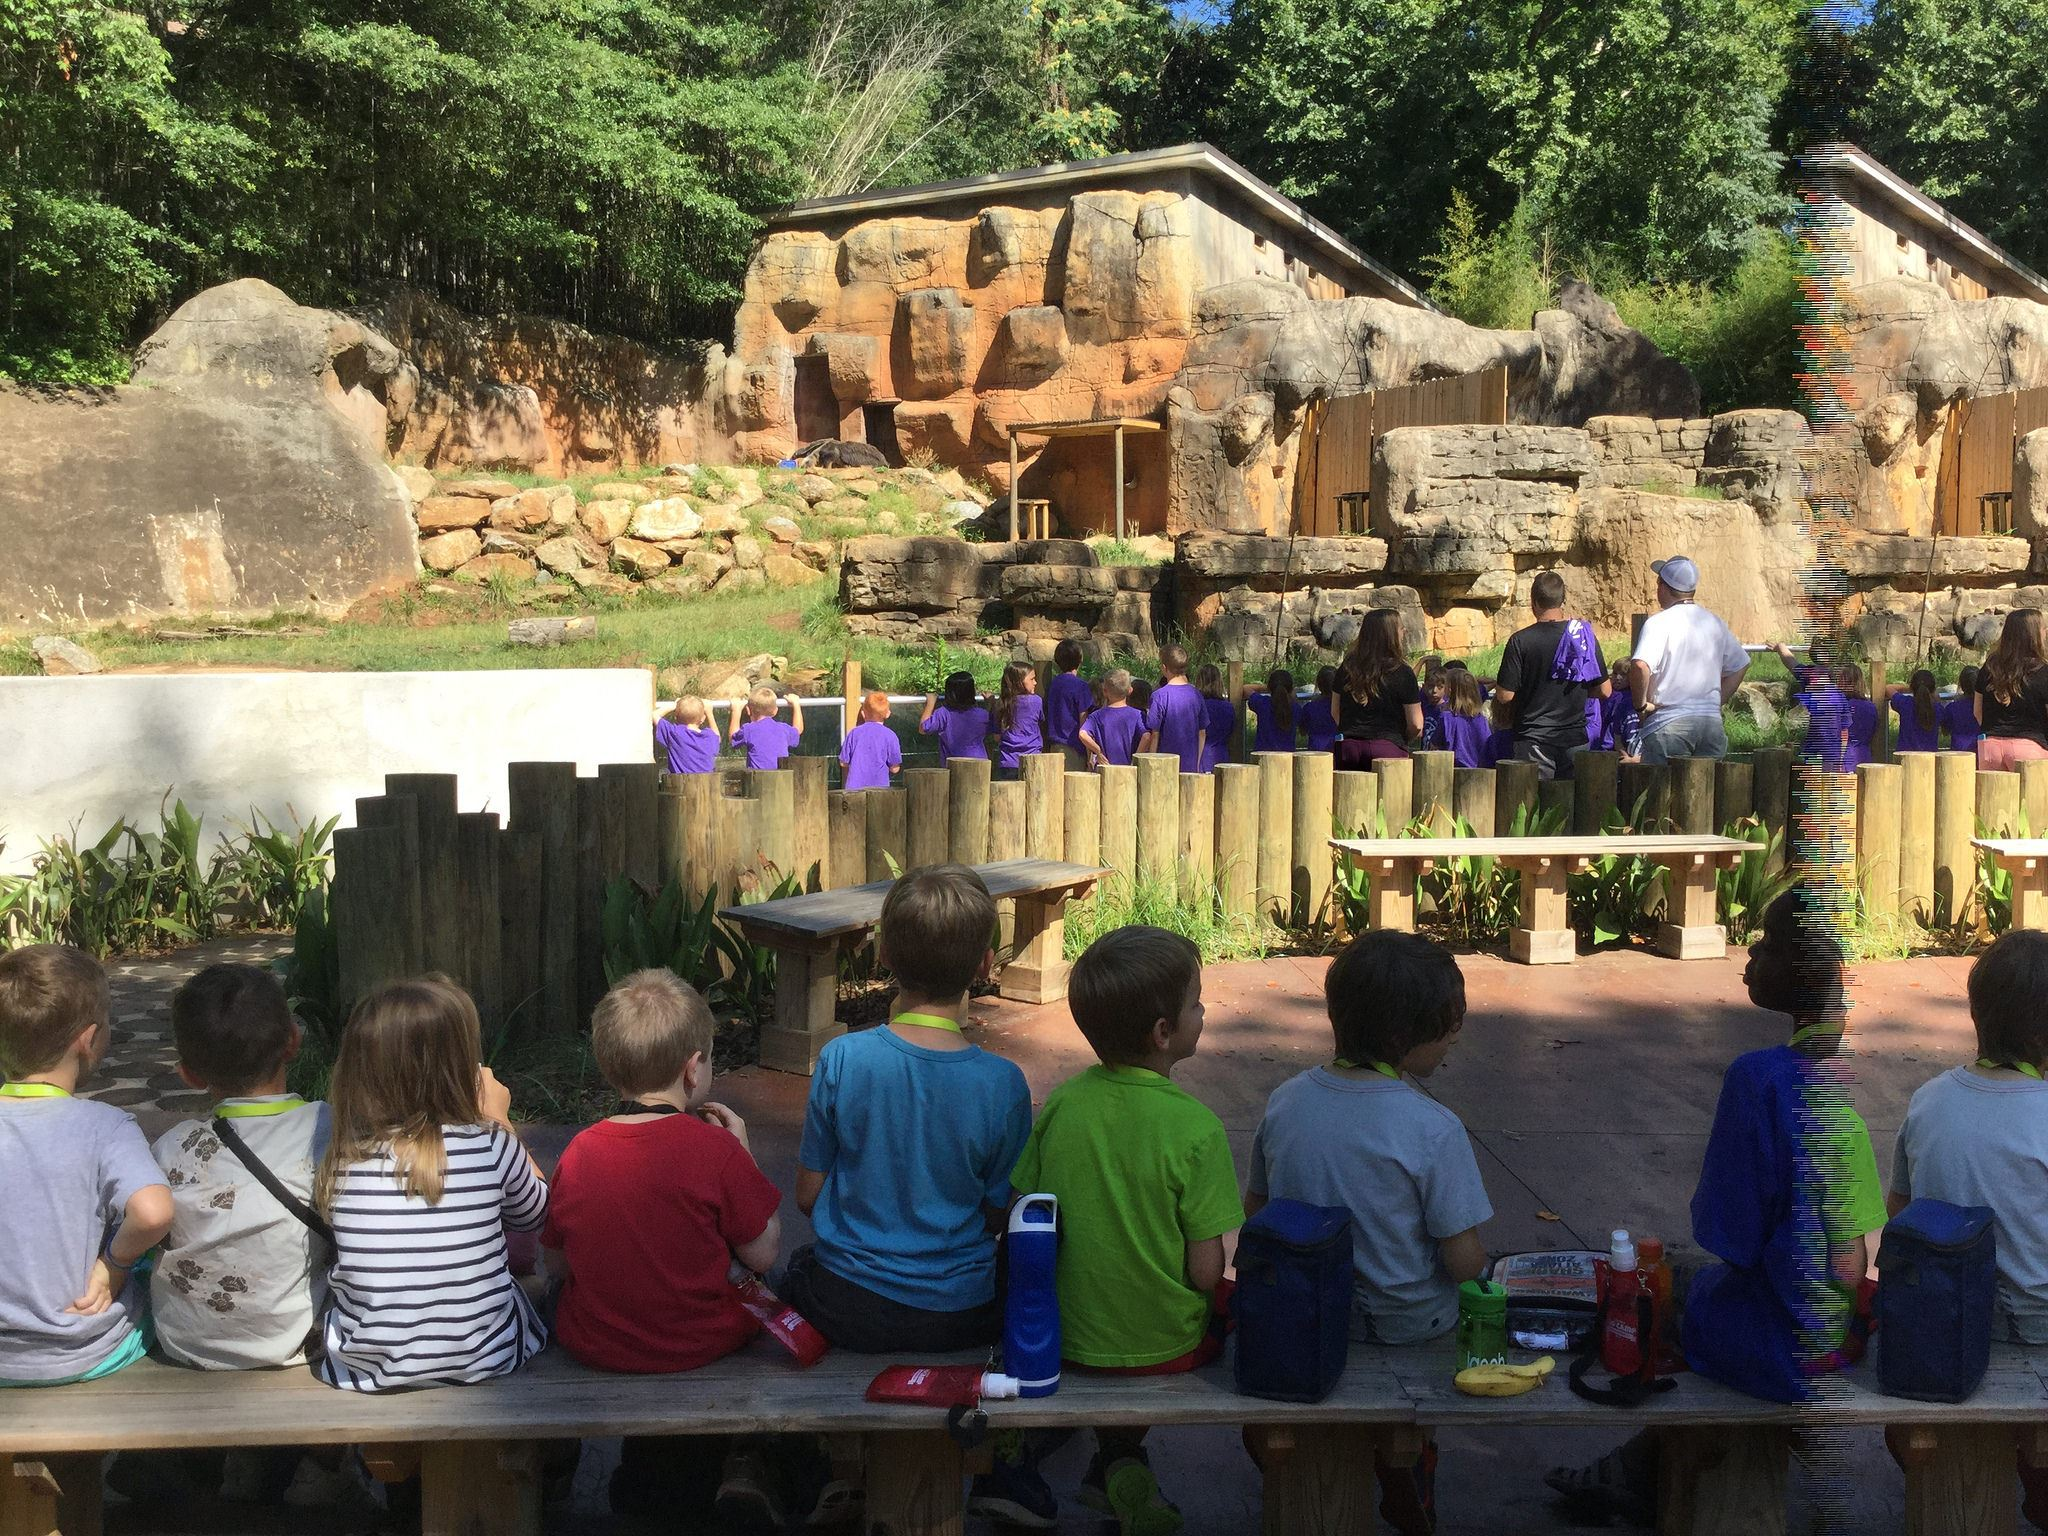 Children sitting on a bench at the zoo eating lunch, while another group of kids look at an exhibit